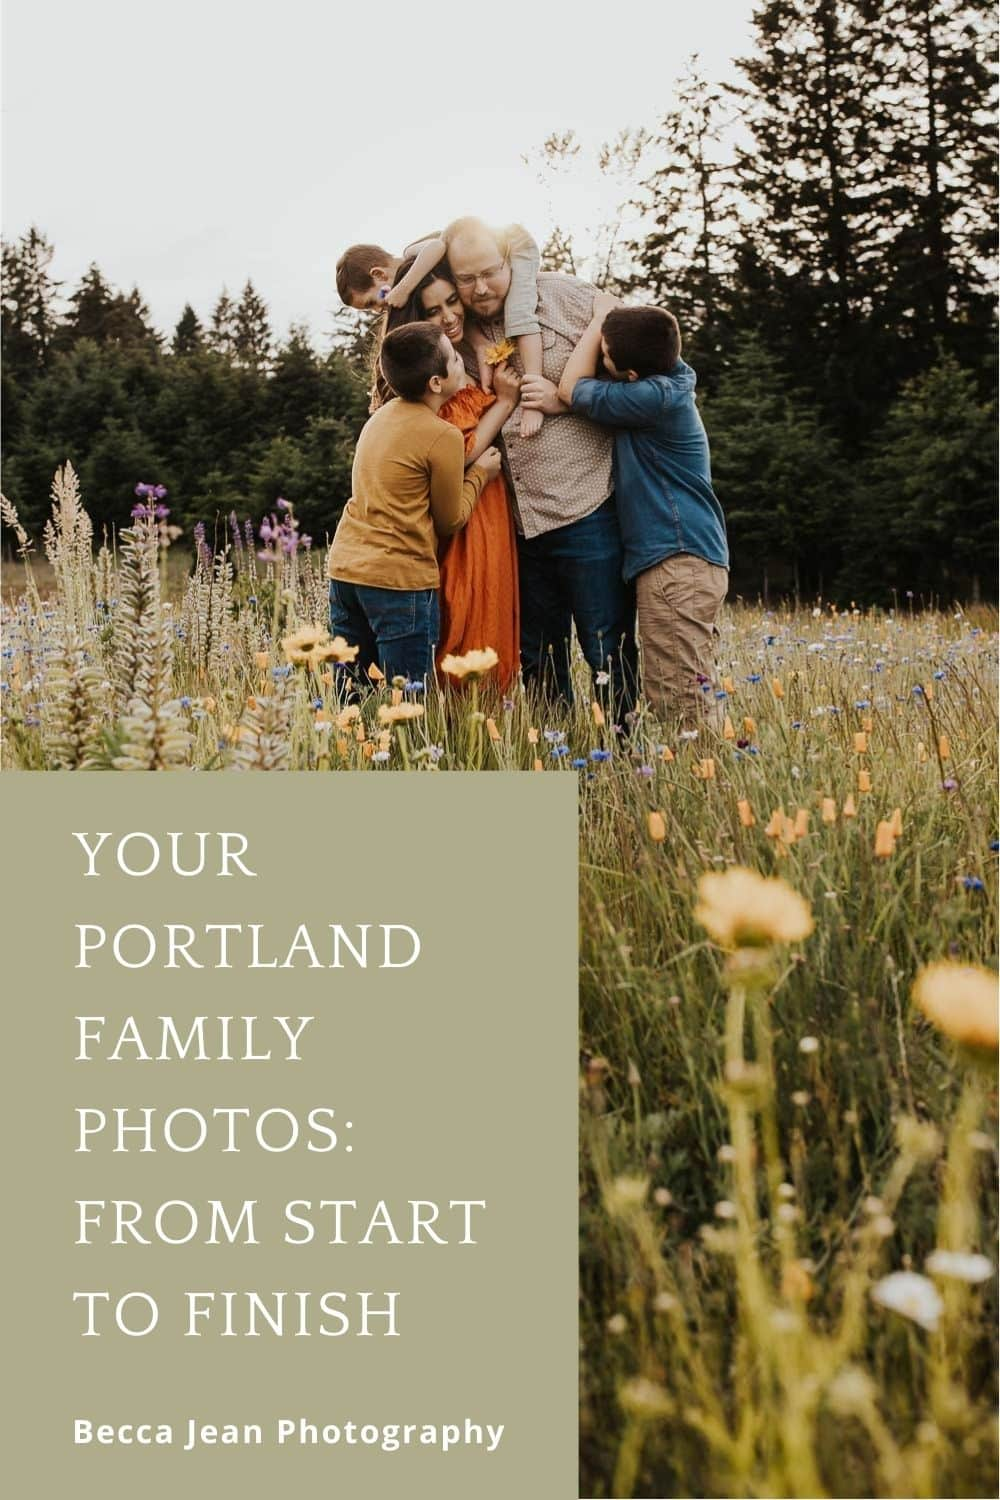 Your portland family photos from start to finish